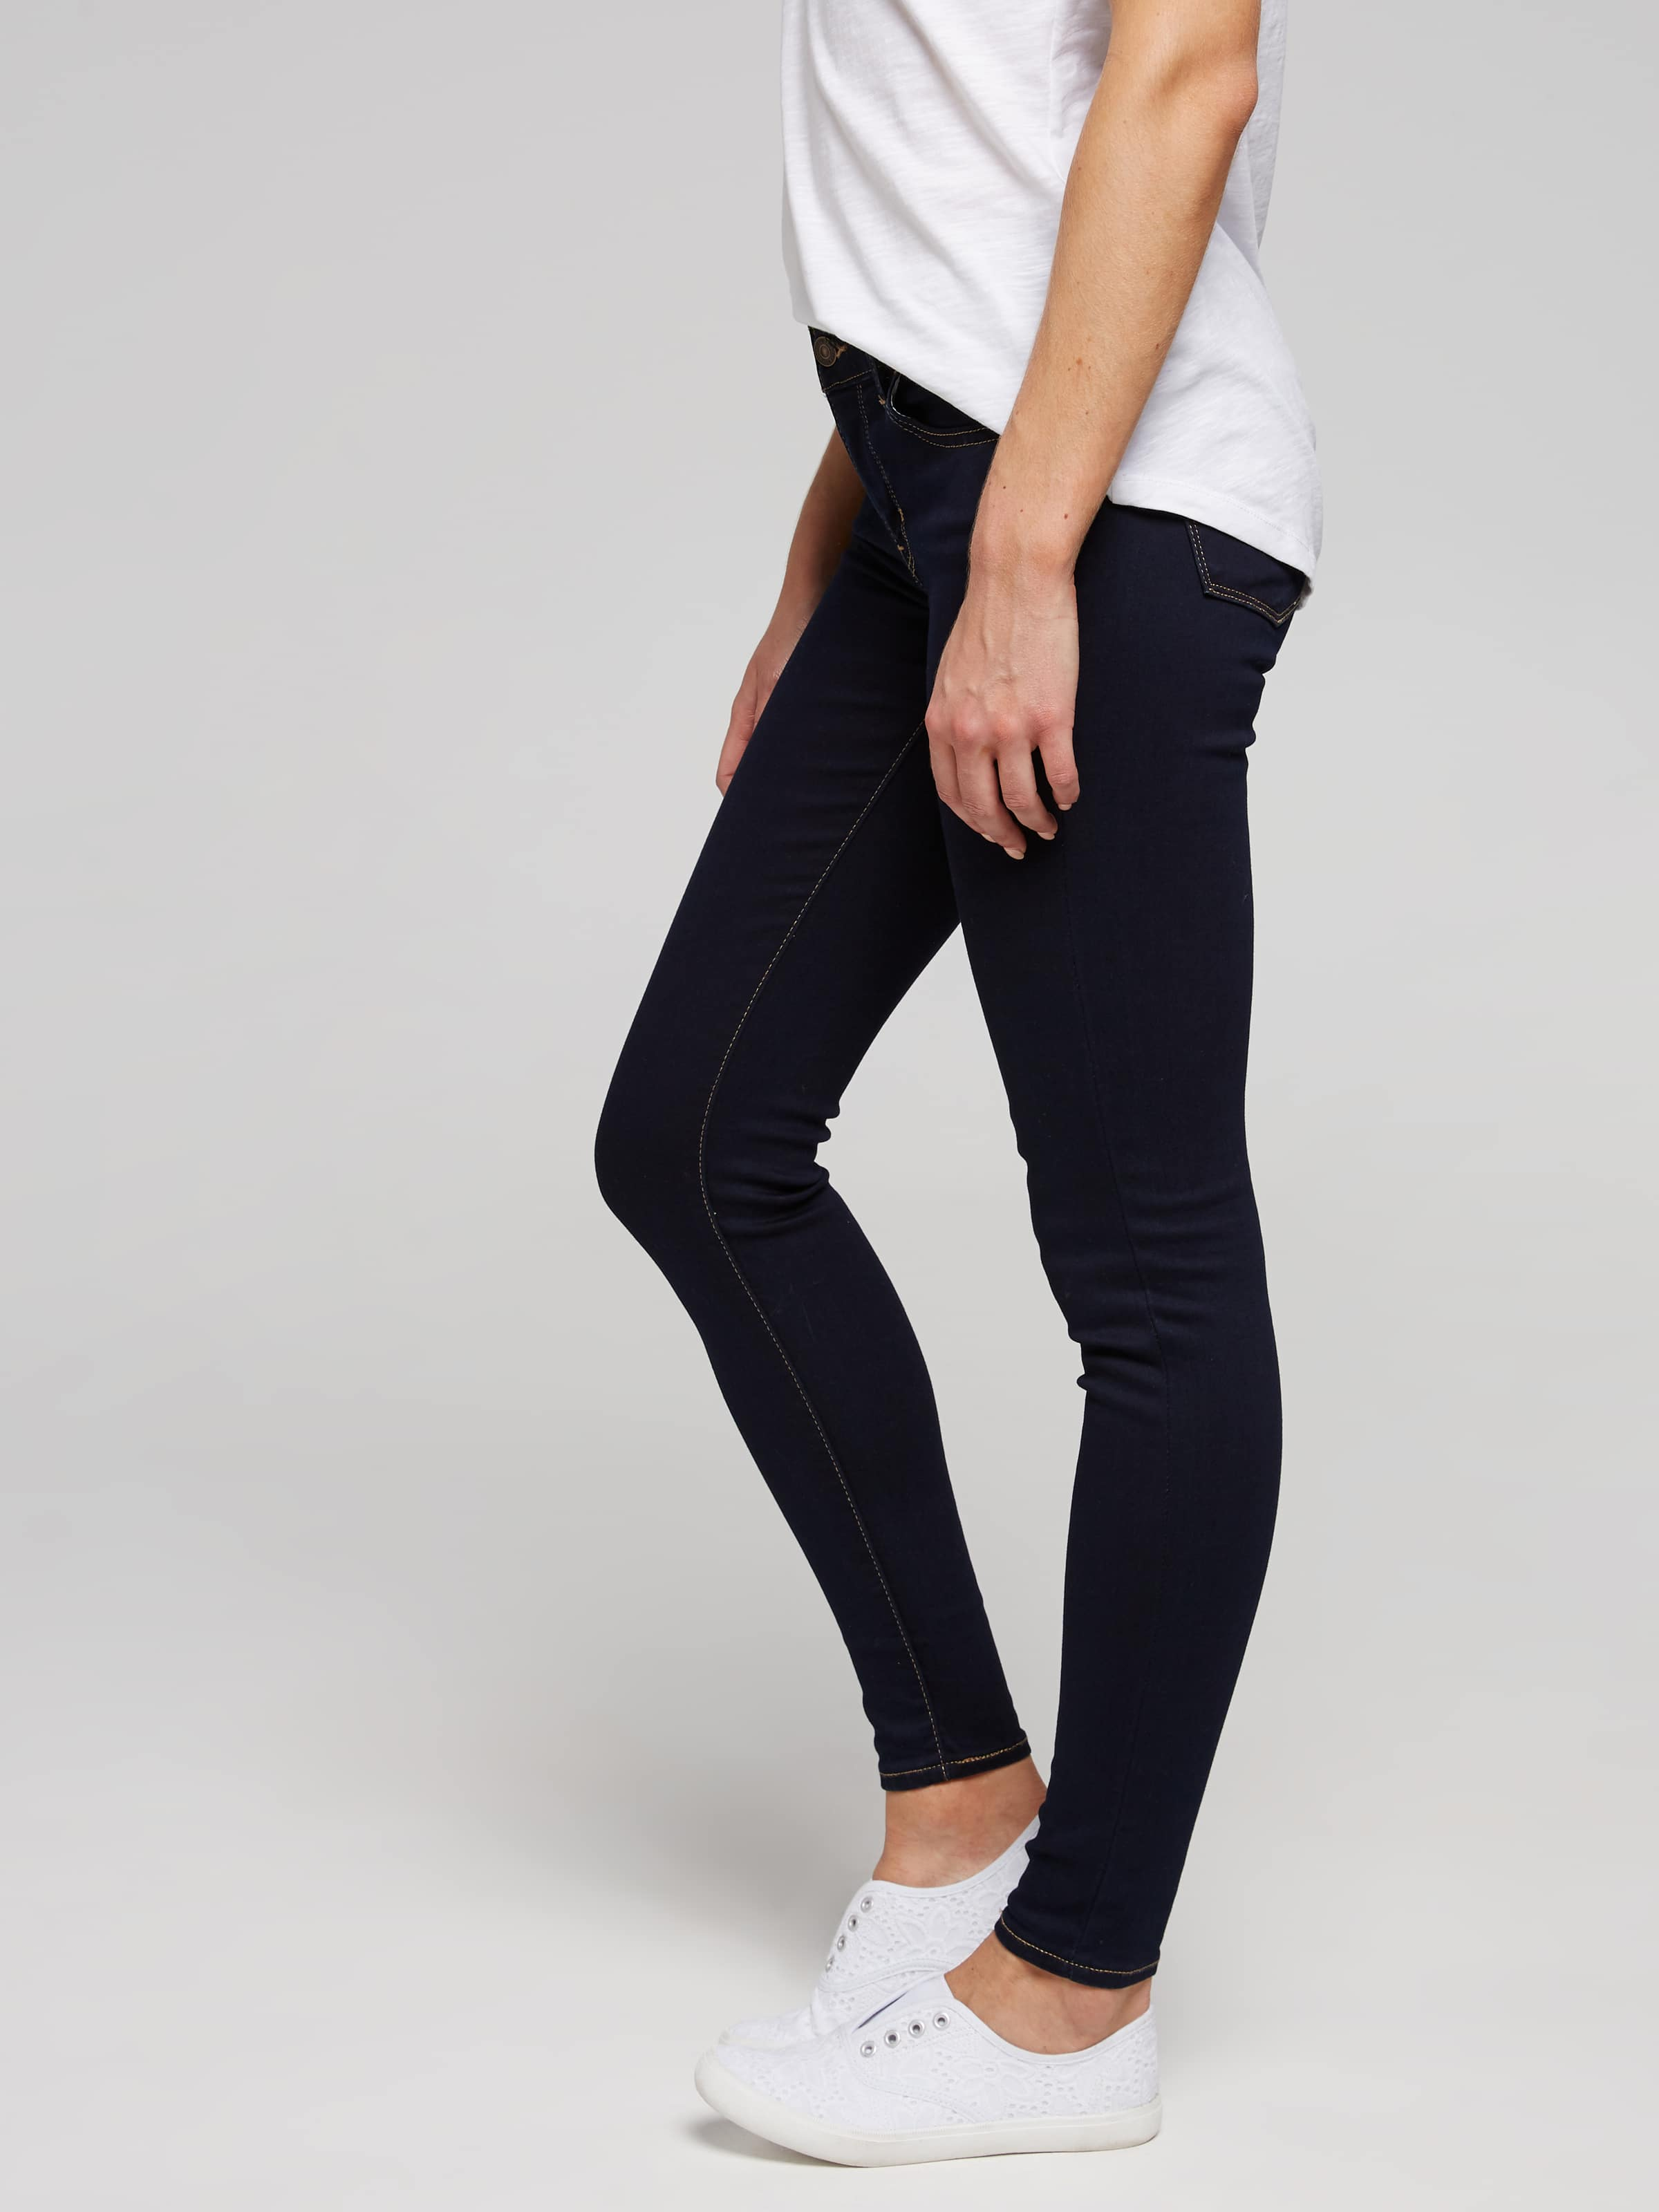 67743fdefa ... Image for Levi s 710 Super Skinny Jean In Dusk Rinse from Just Jeans